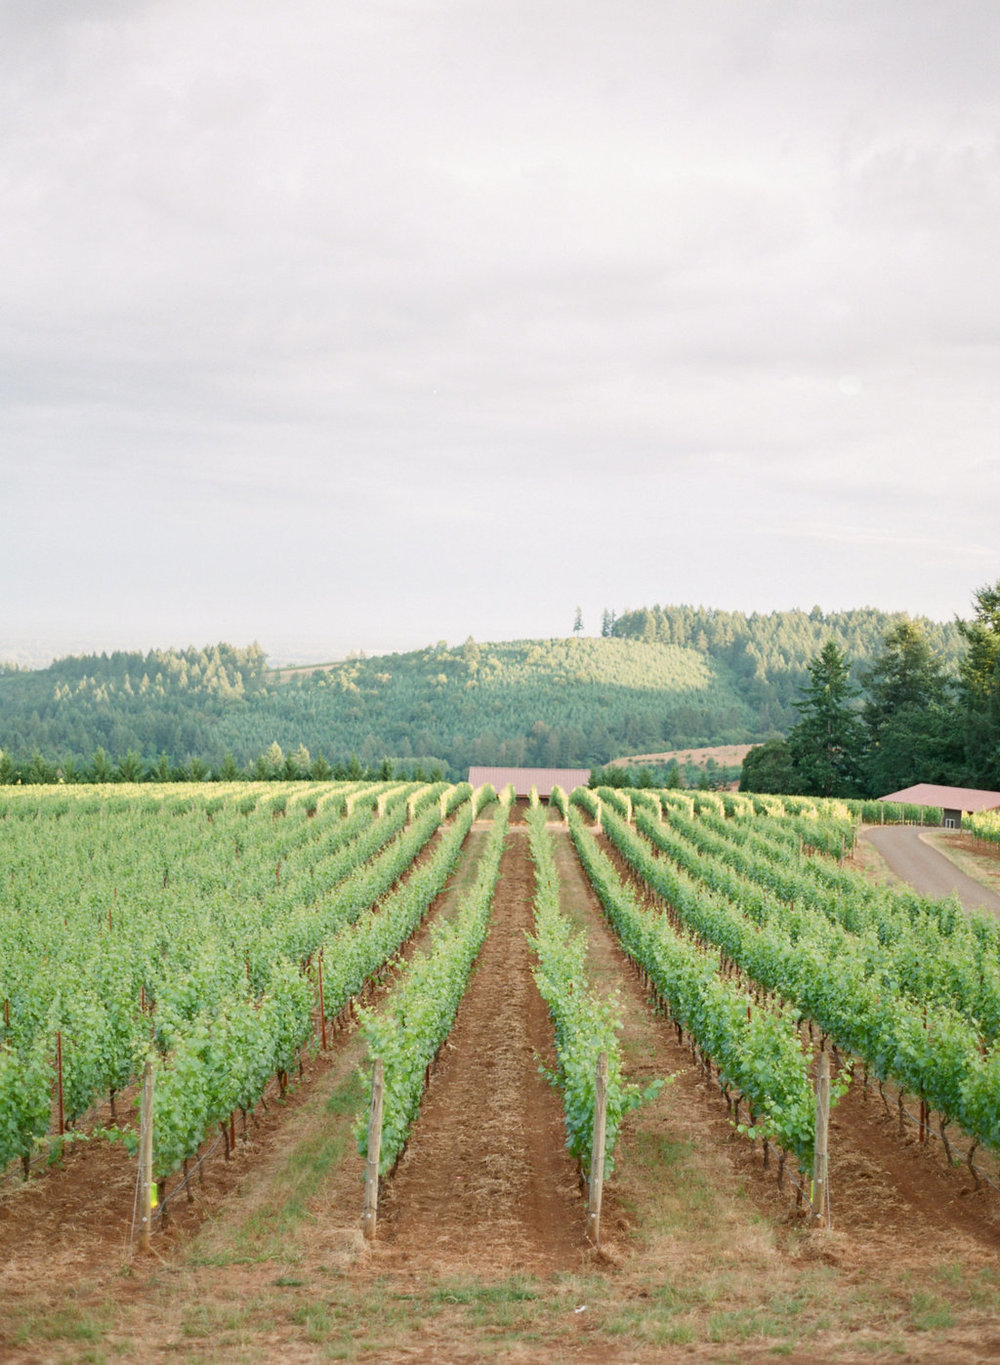 Carlos-Hernandez-Photography-Black-Walnut-Inn-Vineyard-Wedding-Inspiration-Dundee-Oregon-138.jpg